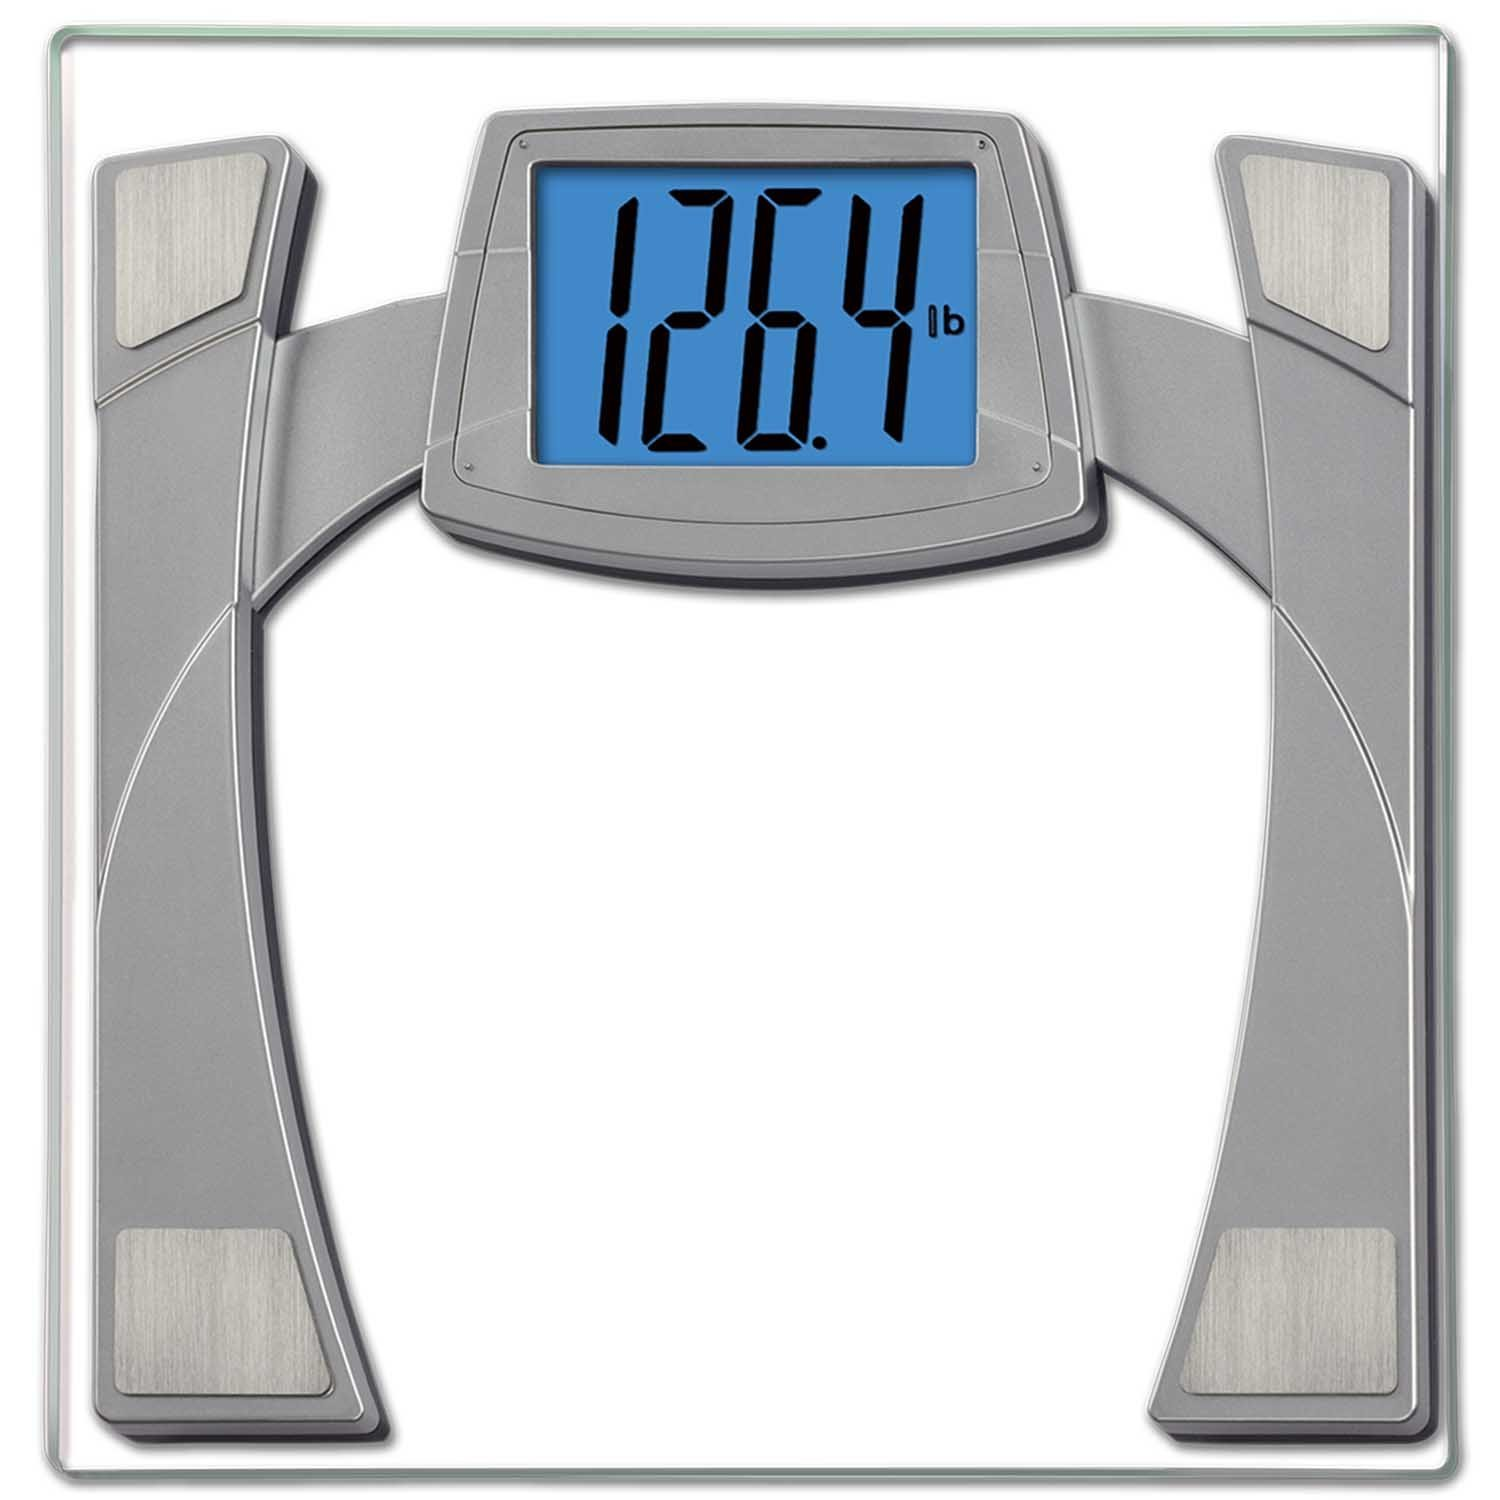 Most Accurate Bathroom Scale 2014: Here We Go Again, Ready?: EatSmart Precision MaxView